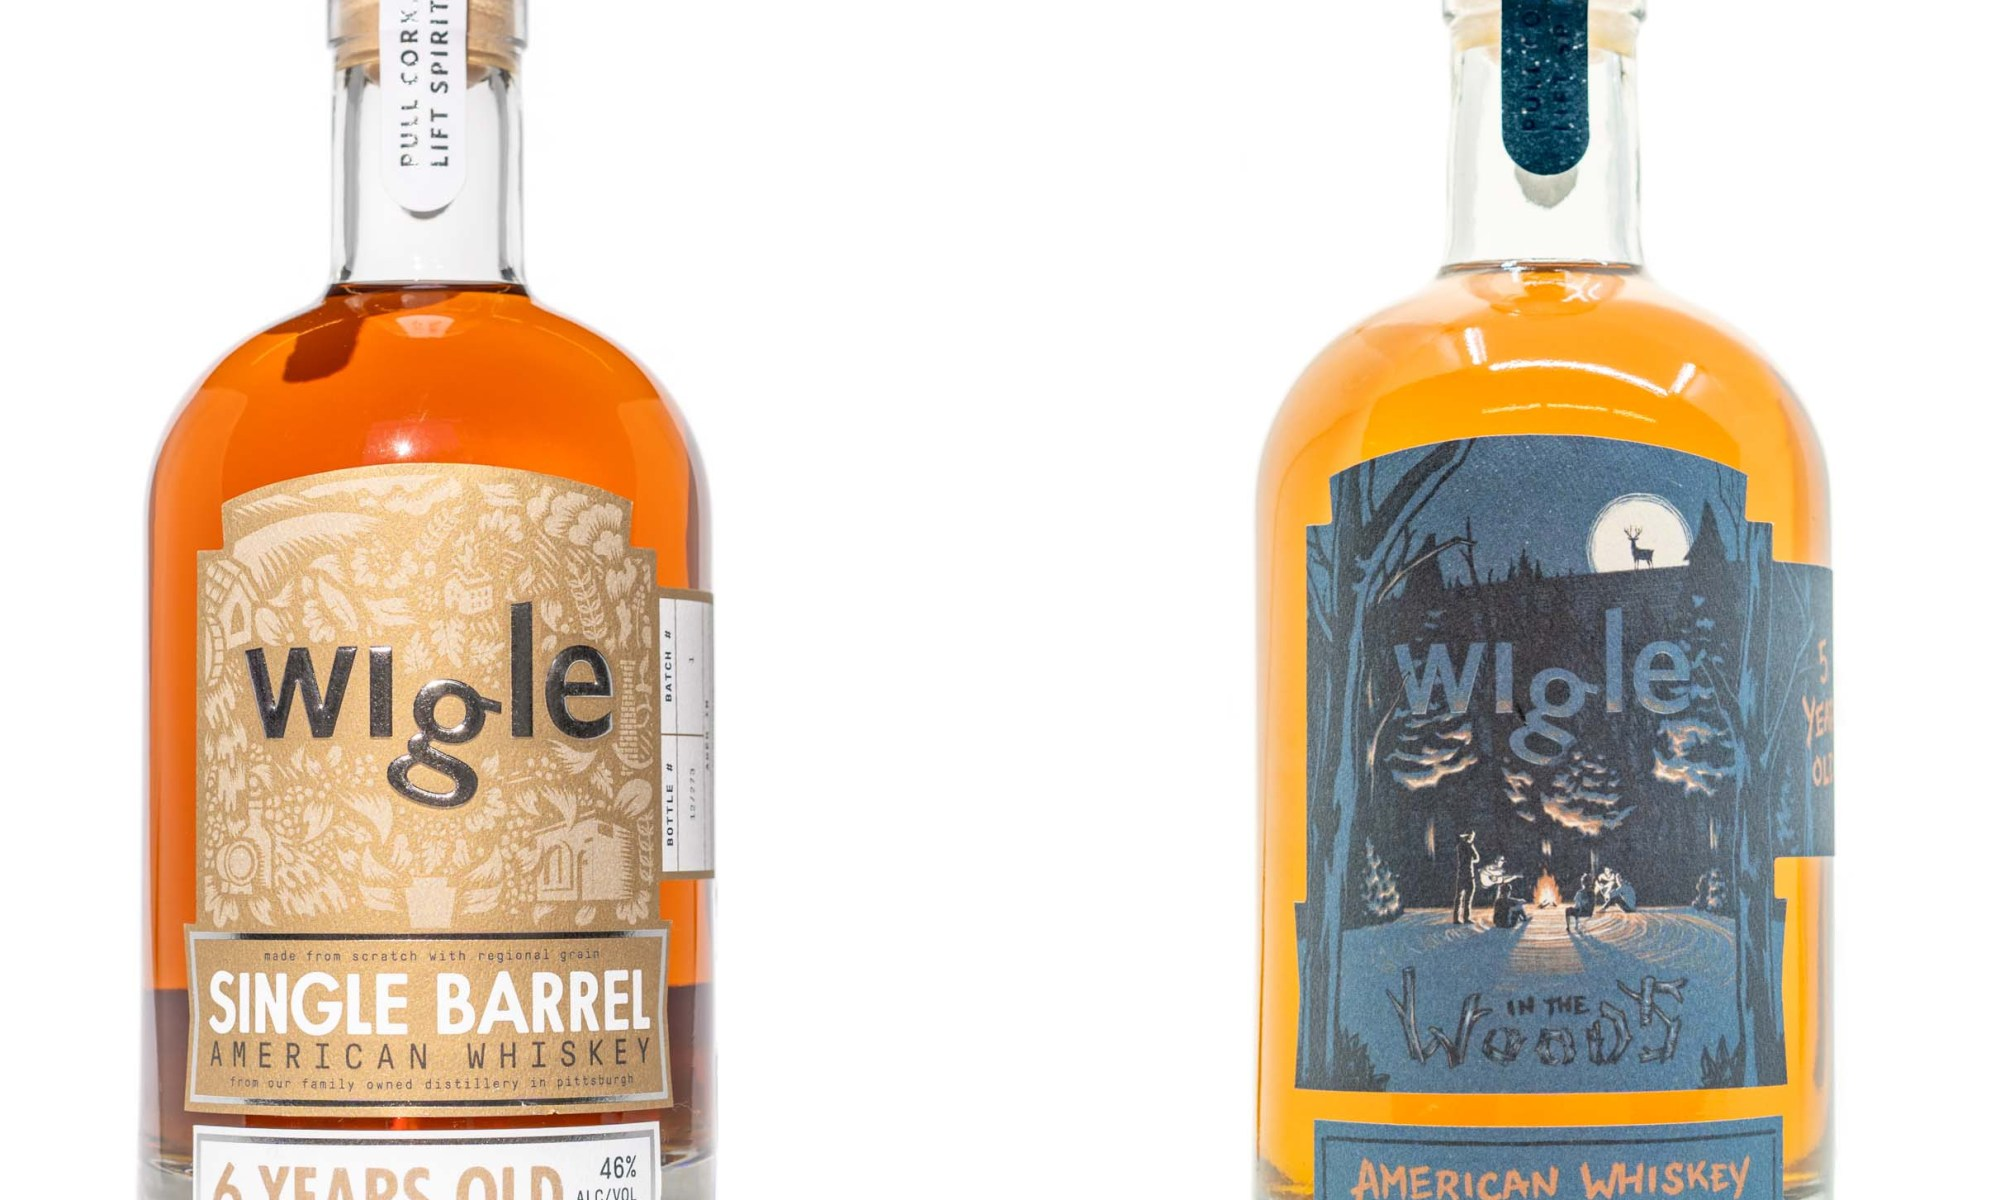 Wigle Releases Two Six Year Aged Whiskeys